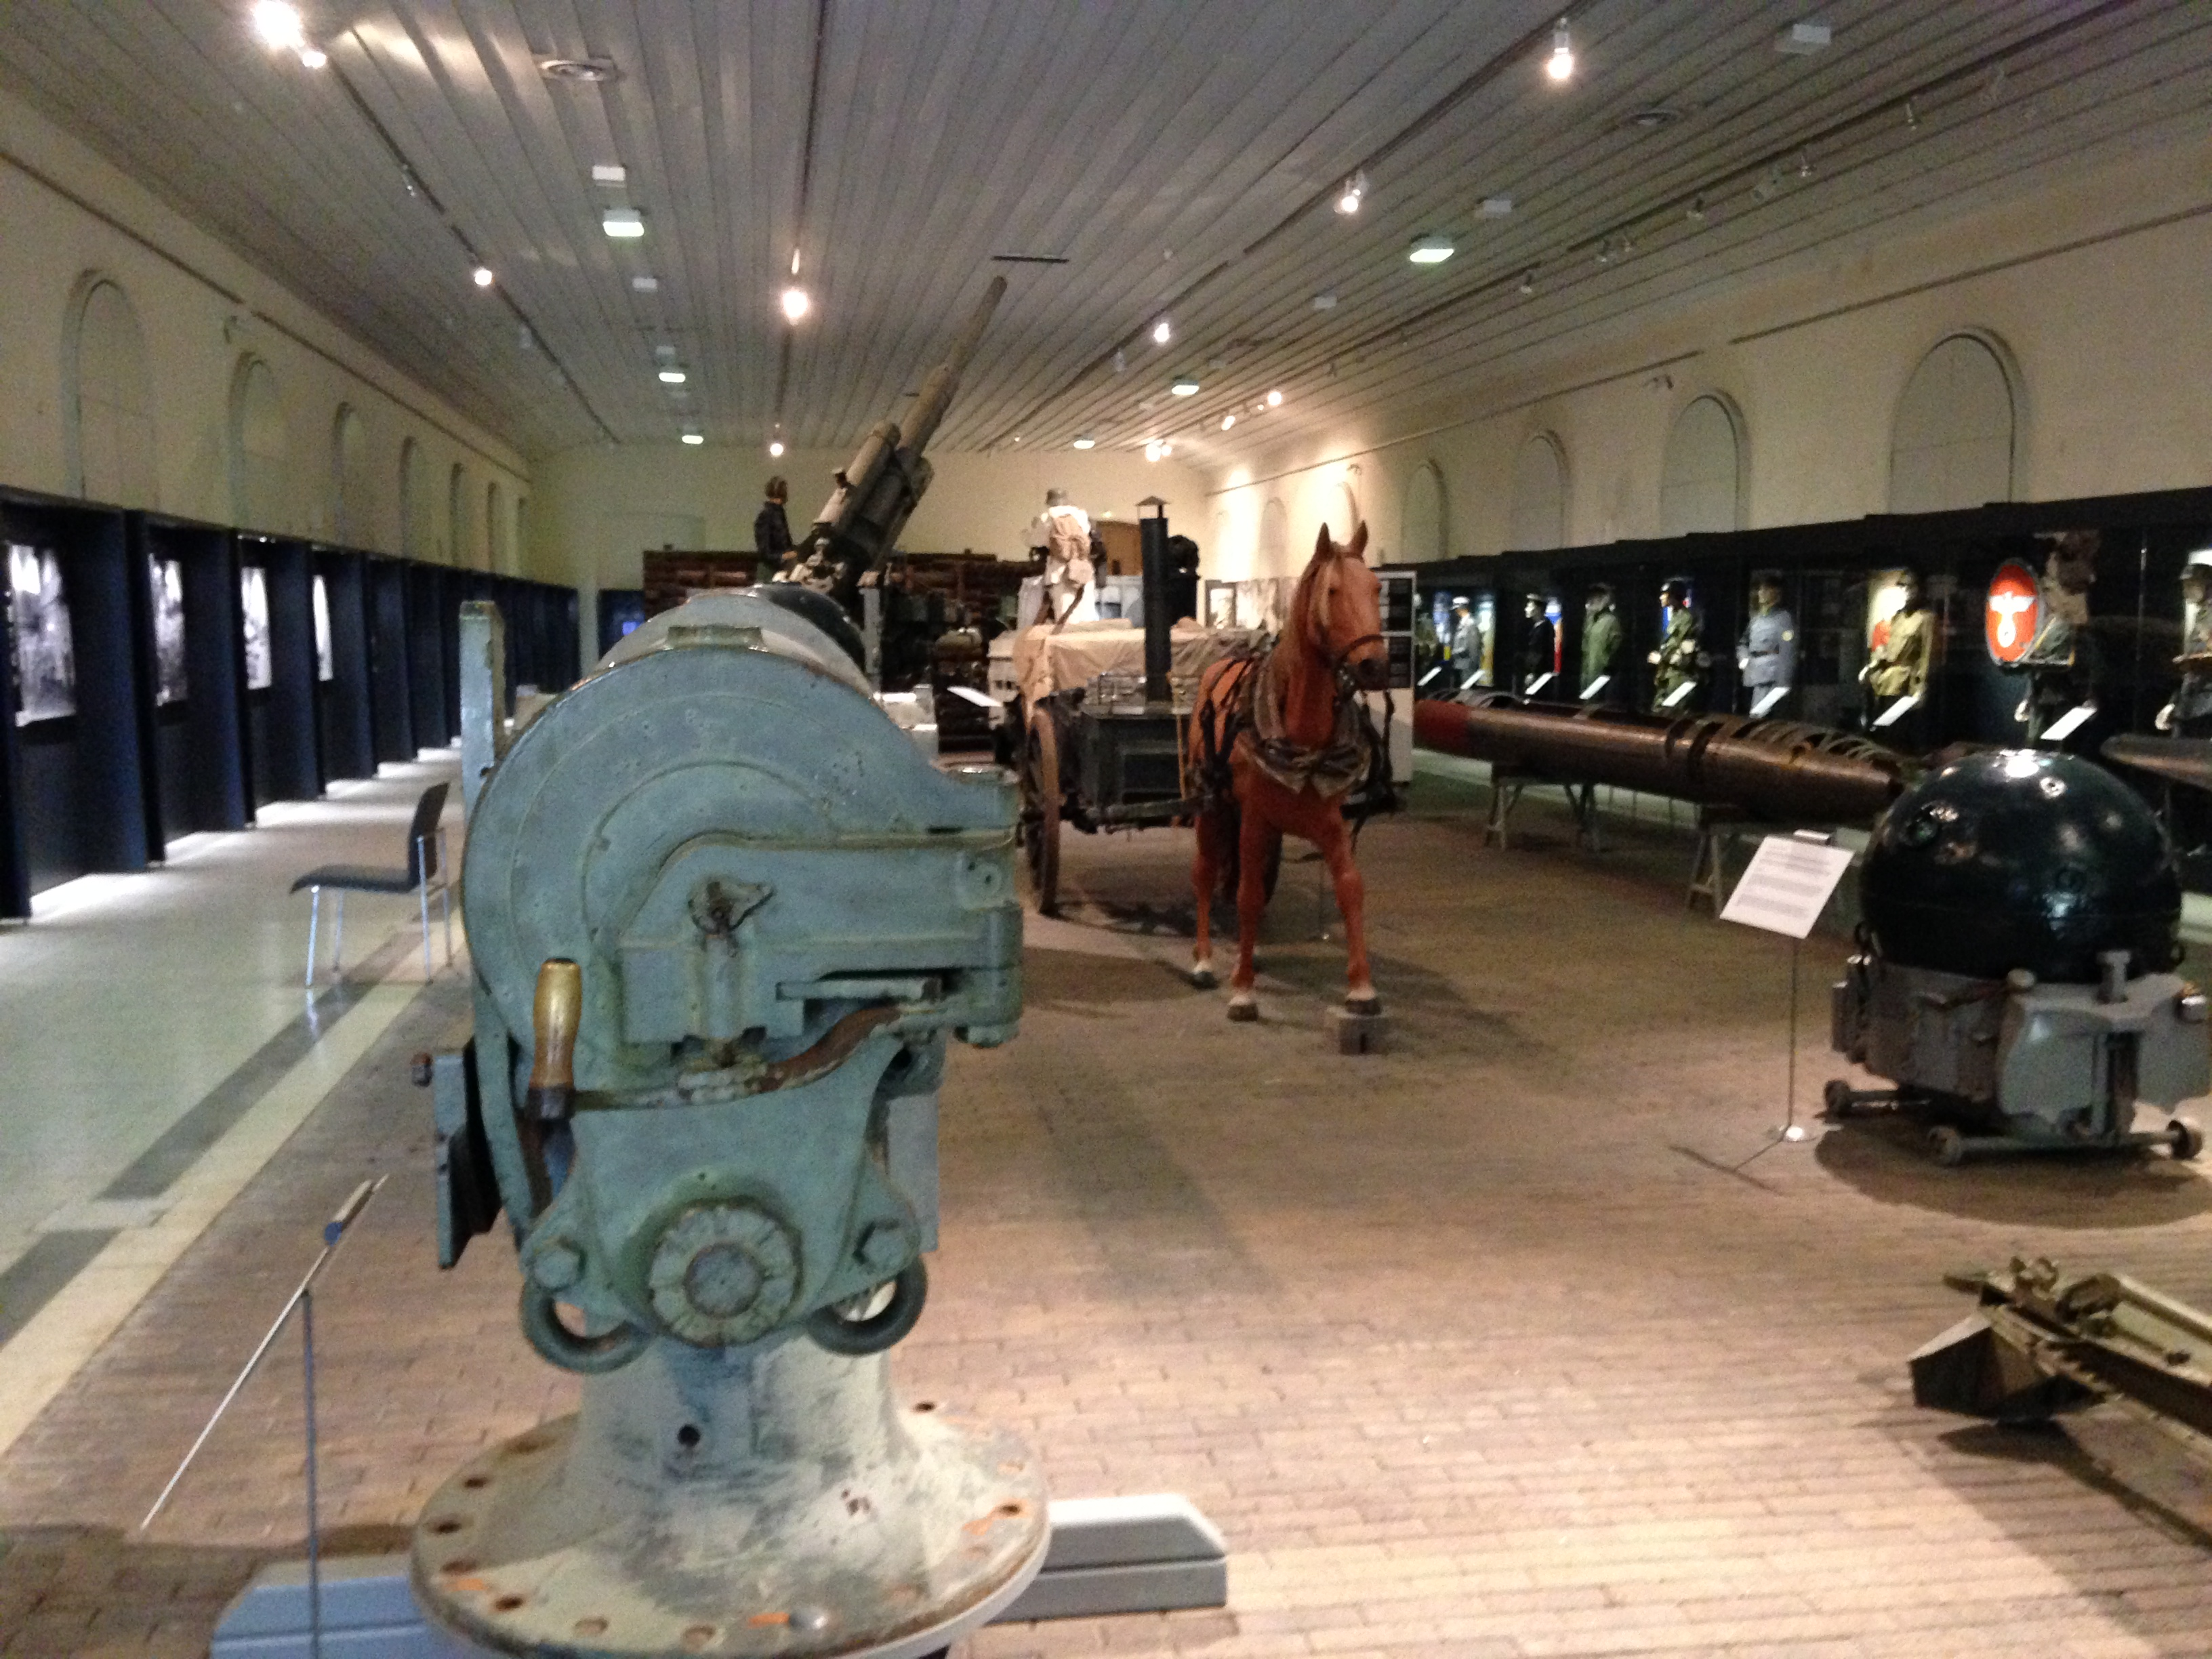 Best Of Our Family Vacation To Scandinavia And The Baltics Kids - Scandinavian museums in us